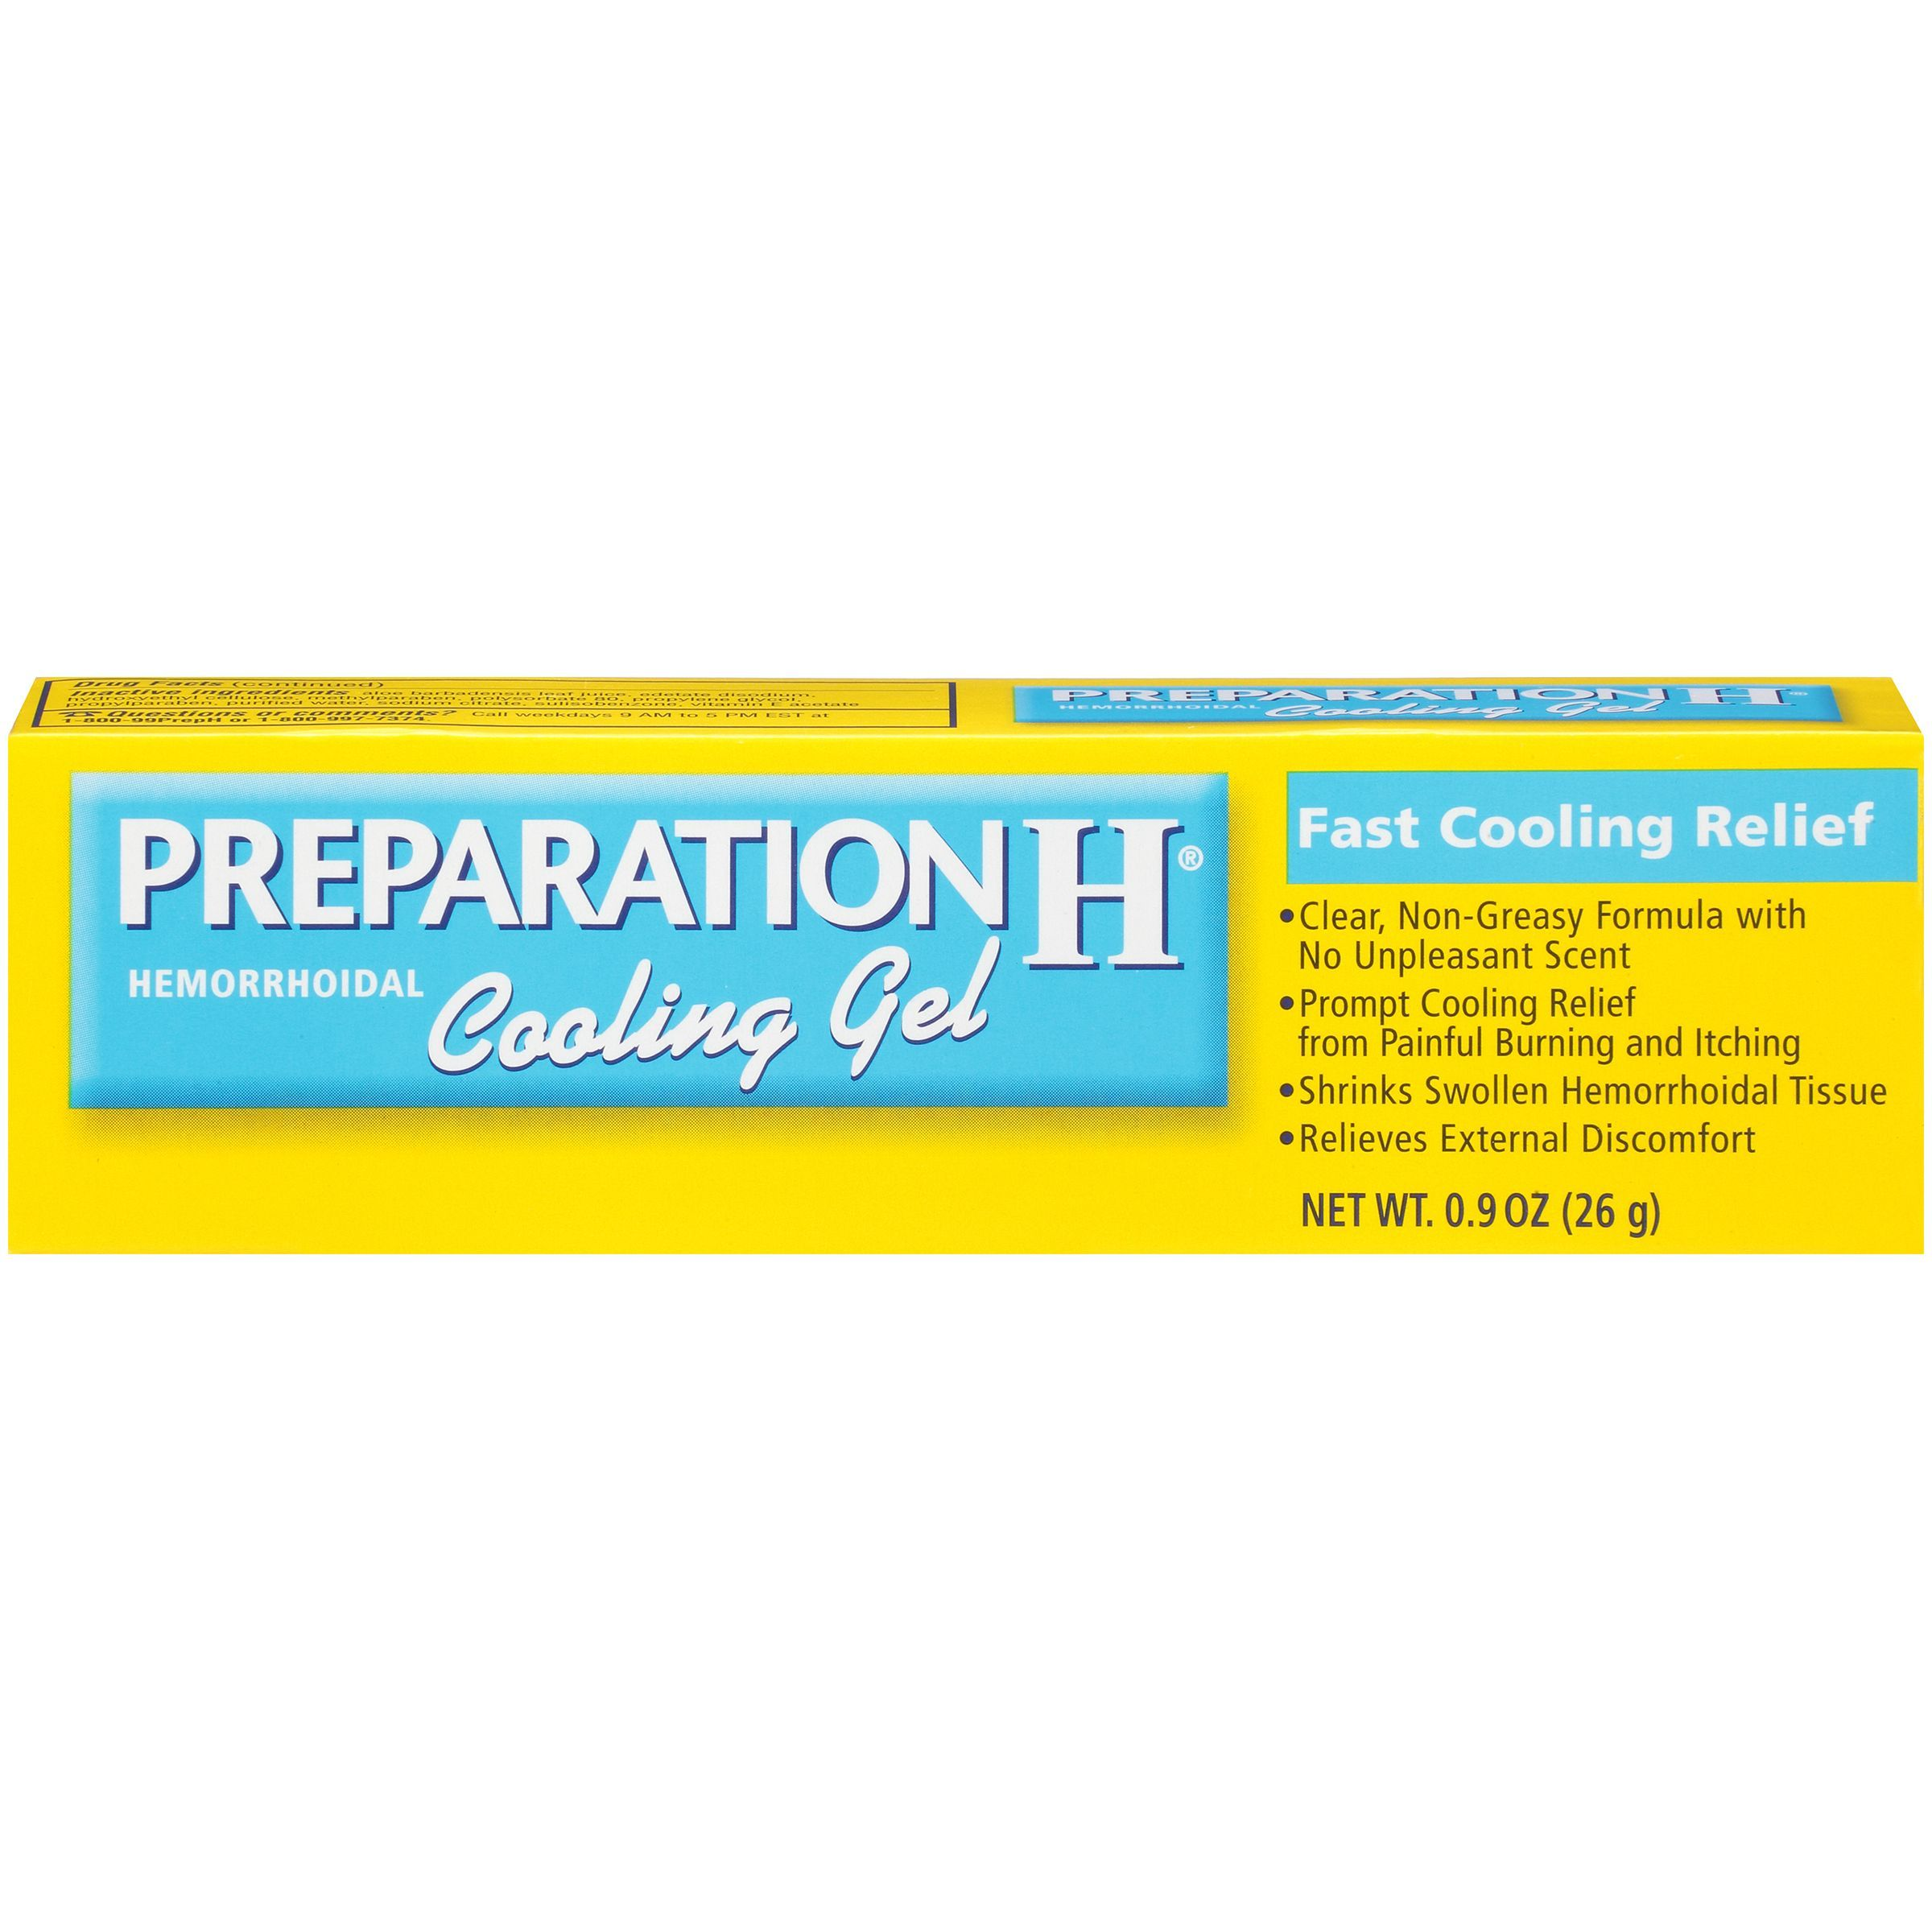 Preparation H Hemorrhoidal Cooling Gel With Images Cure For